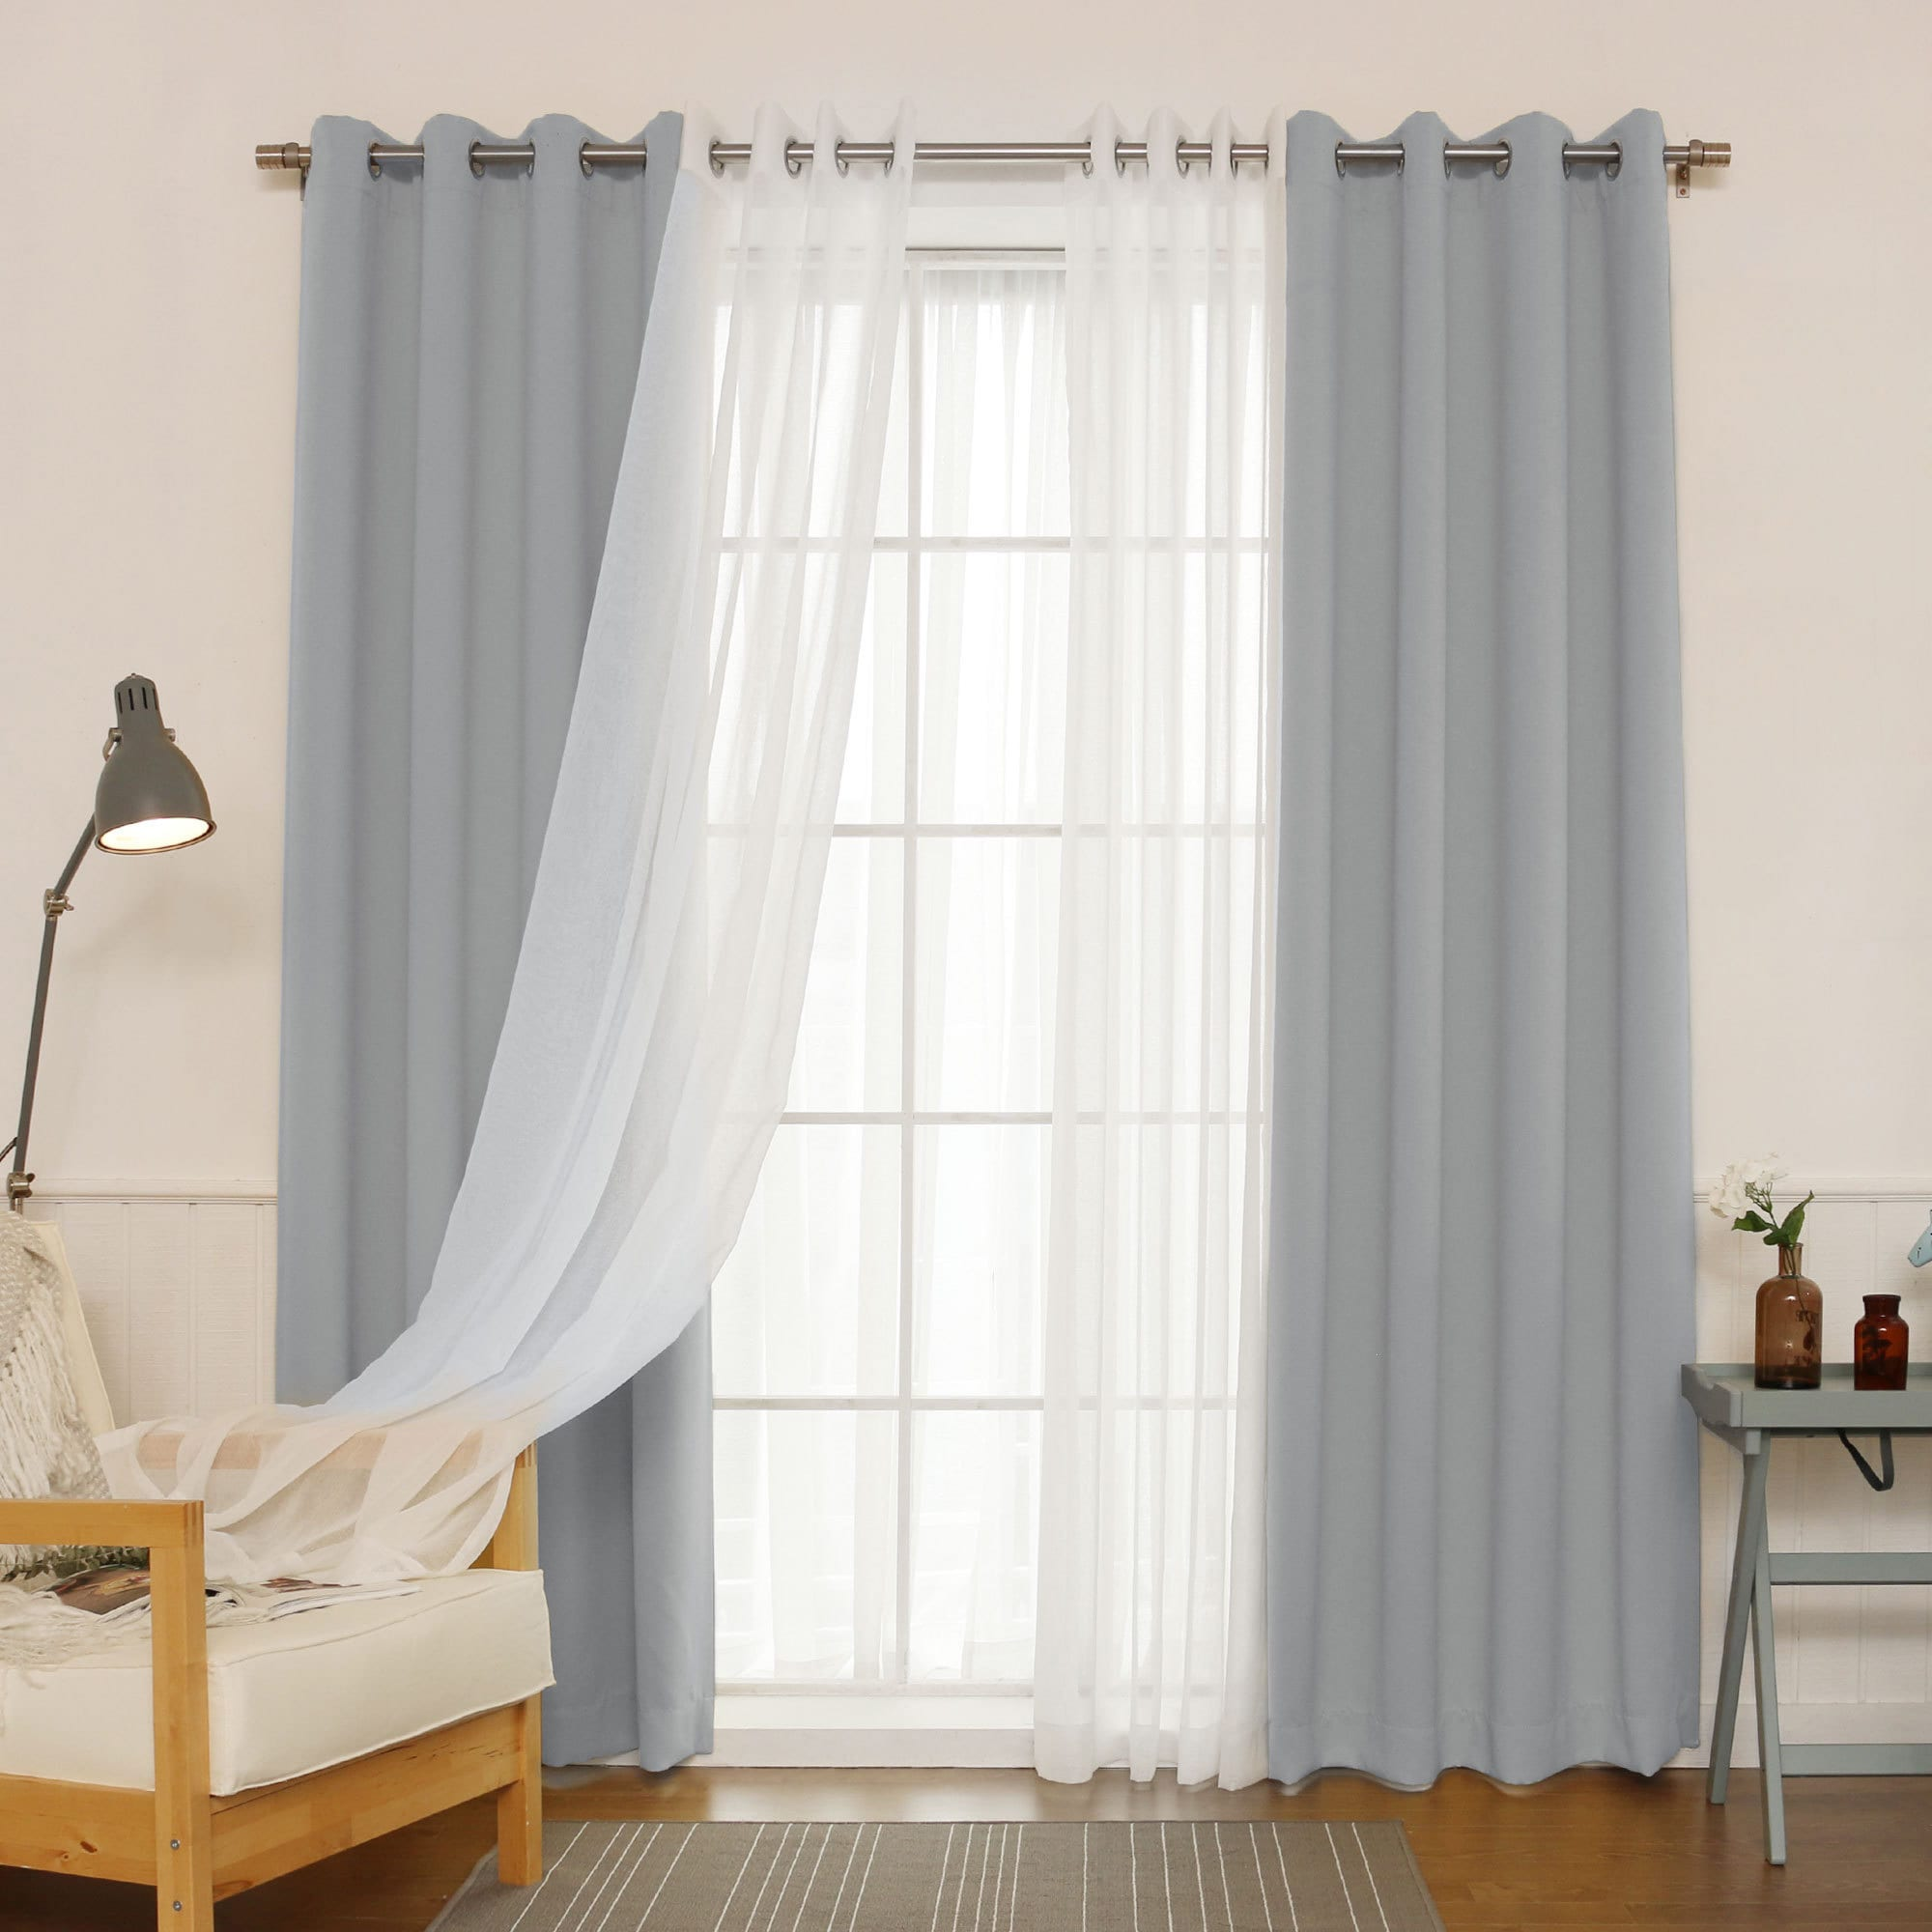 curtain get deals alibaba thermal guides pinch ellis shopping scroll cheap woven damask quotations curtains com insulated at by line pleated on find inch dover